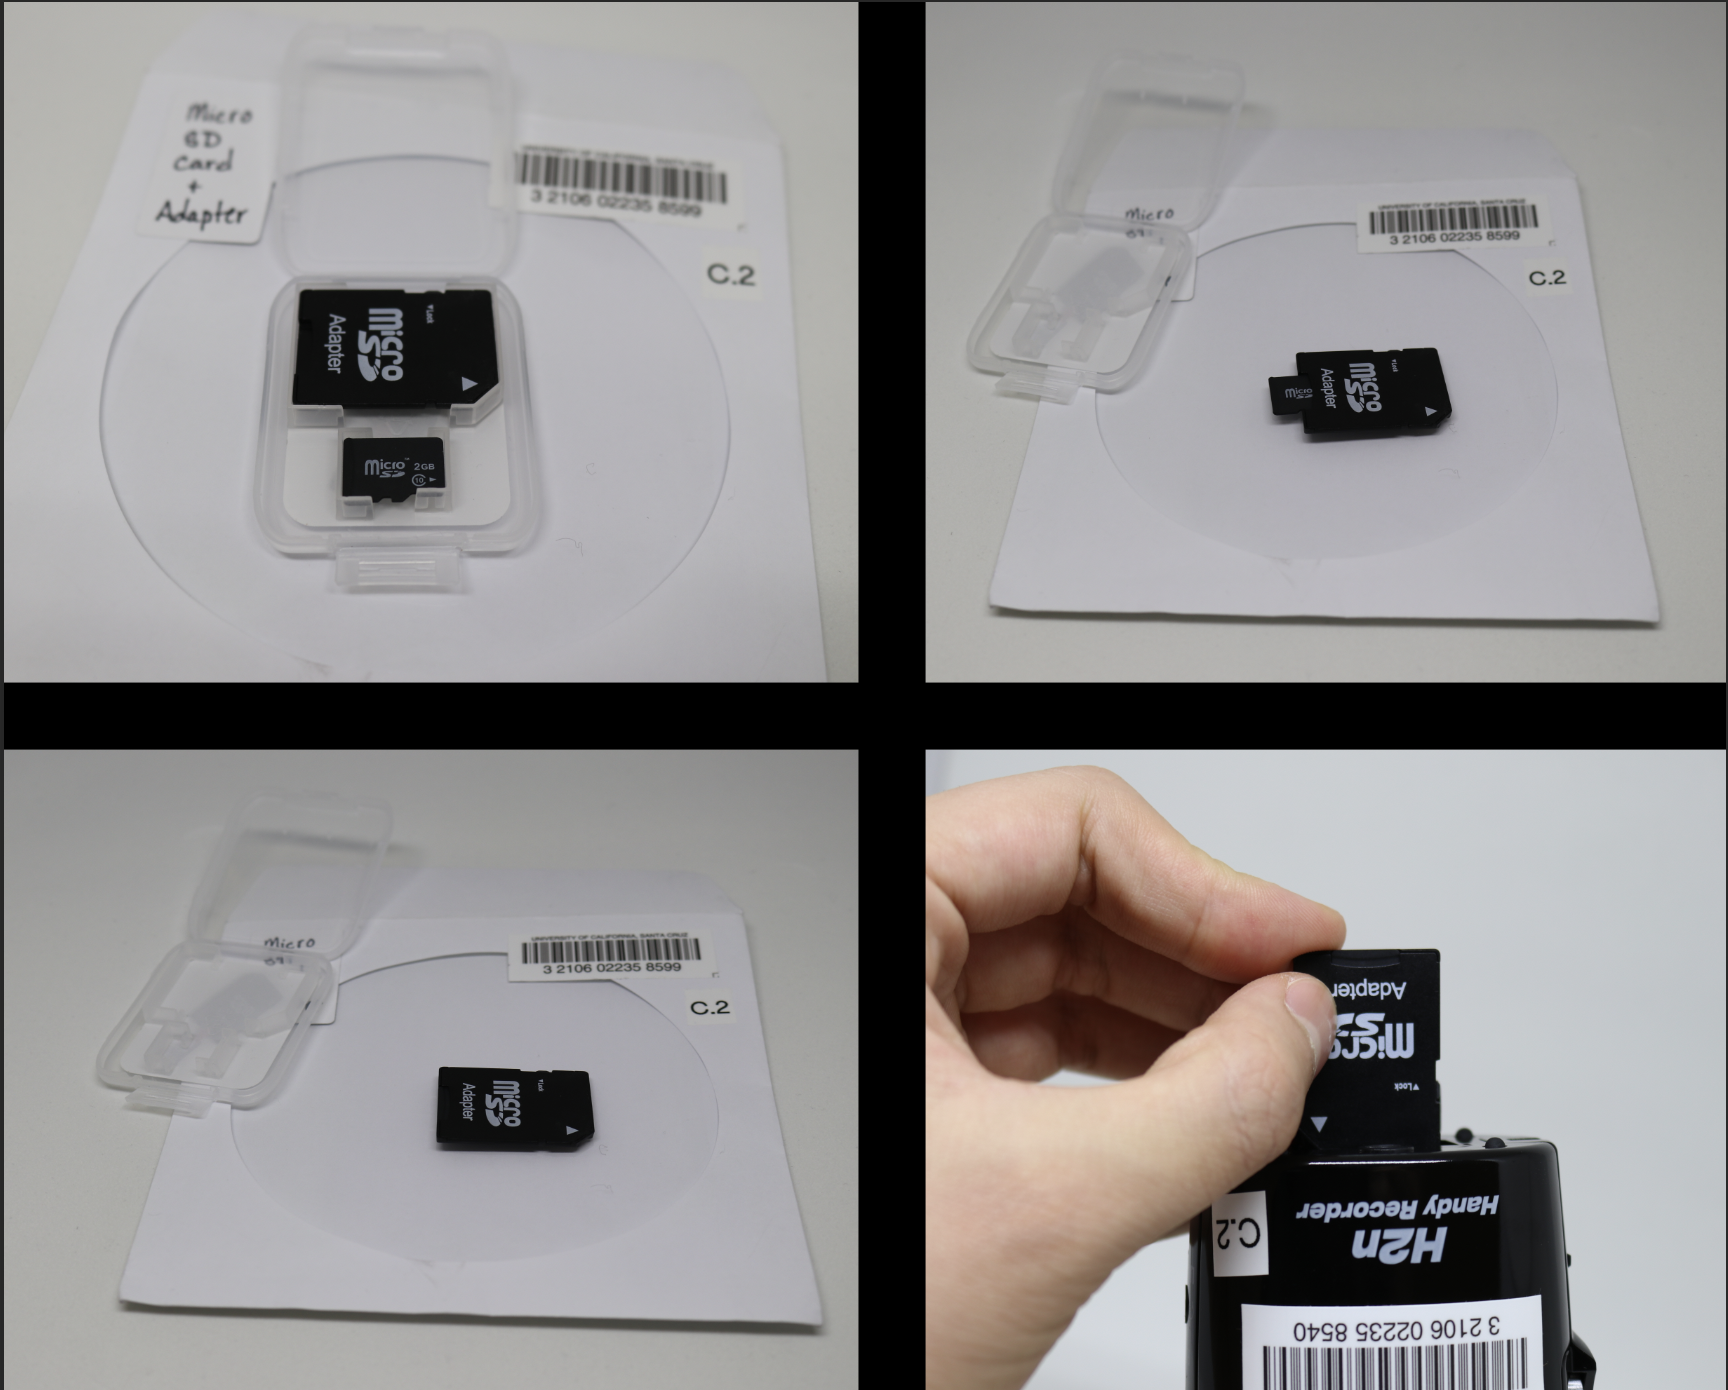 Inserting the MicroSD into the H2n Recorder